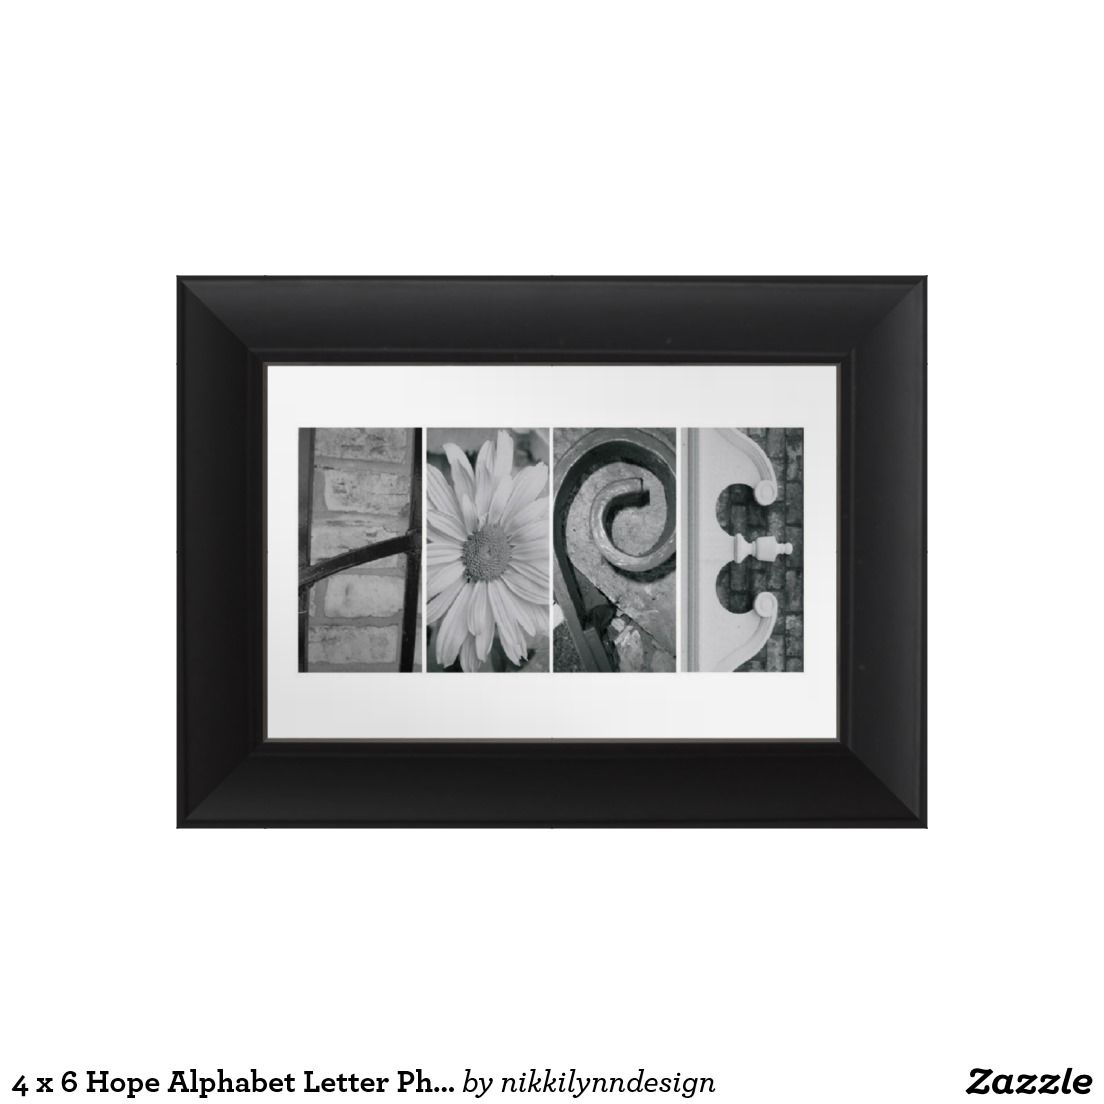 4 x 6 Hope Alphabet Letter Photography Photo Print + Standard Frame